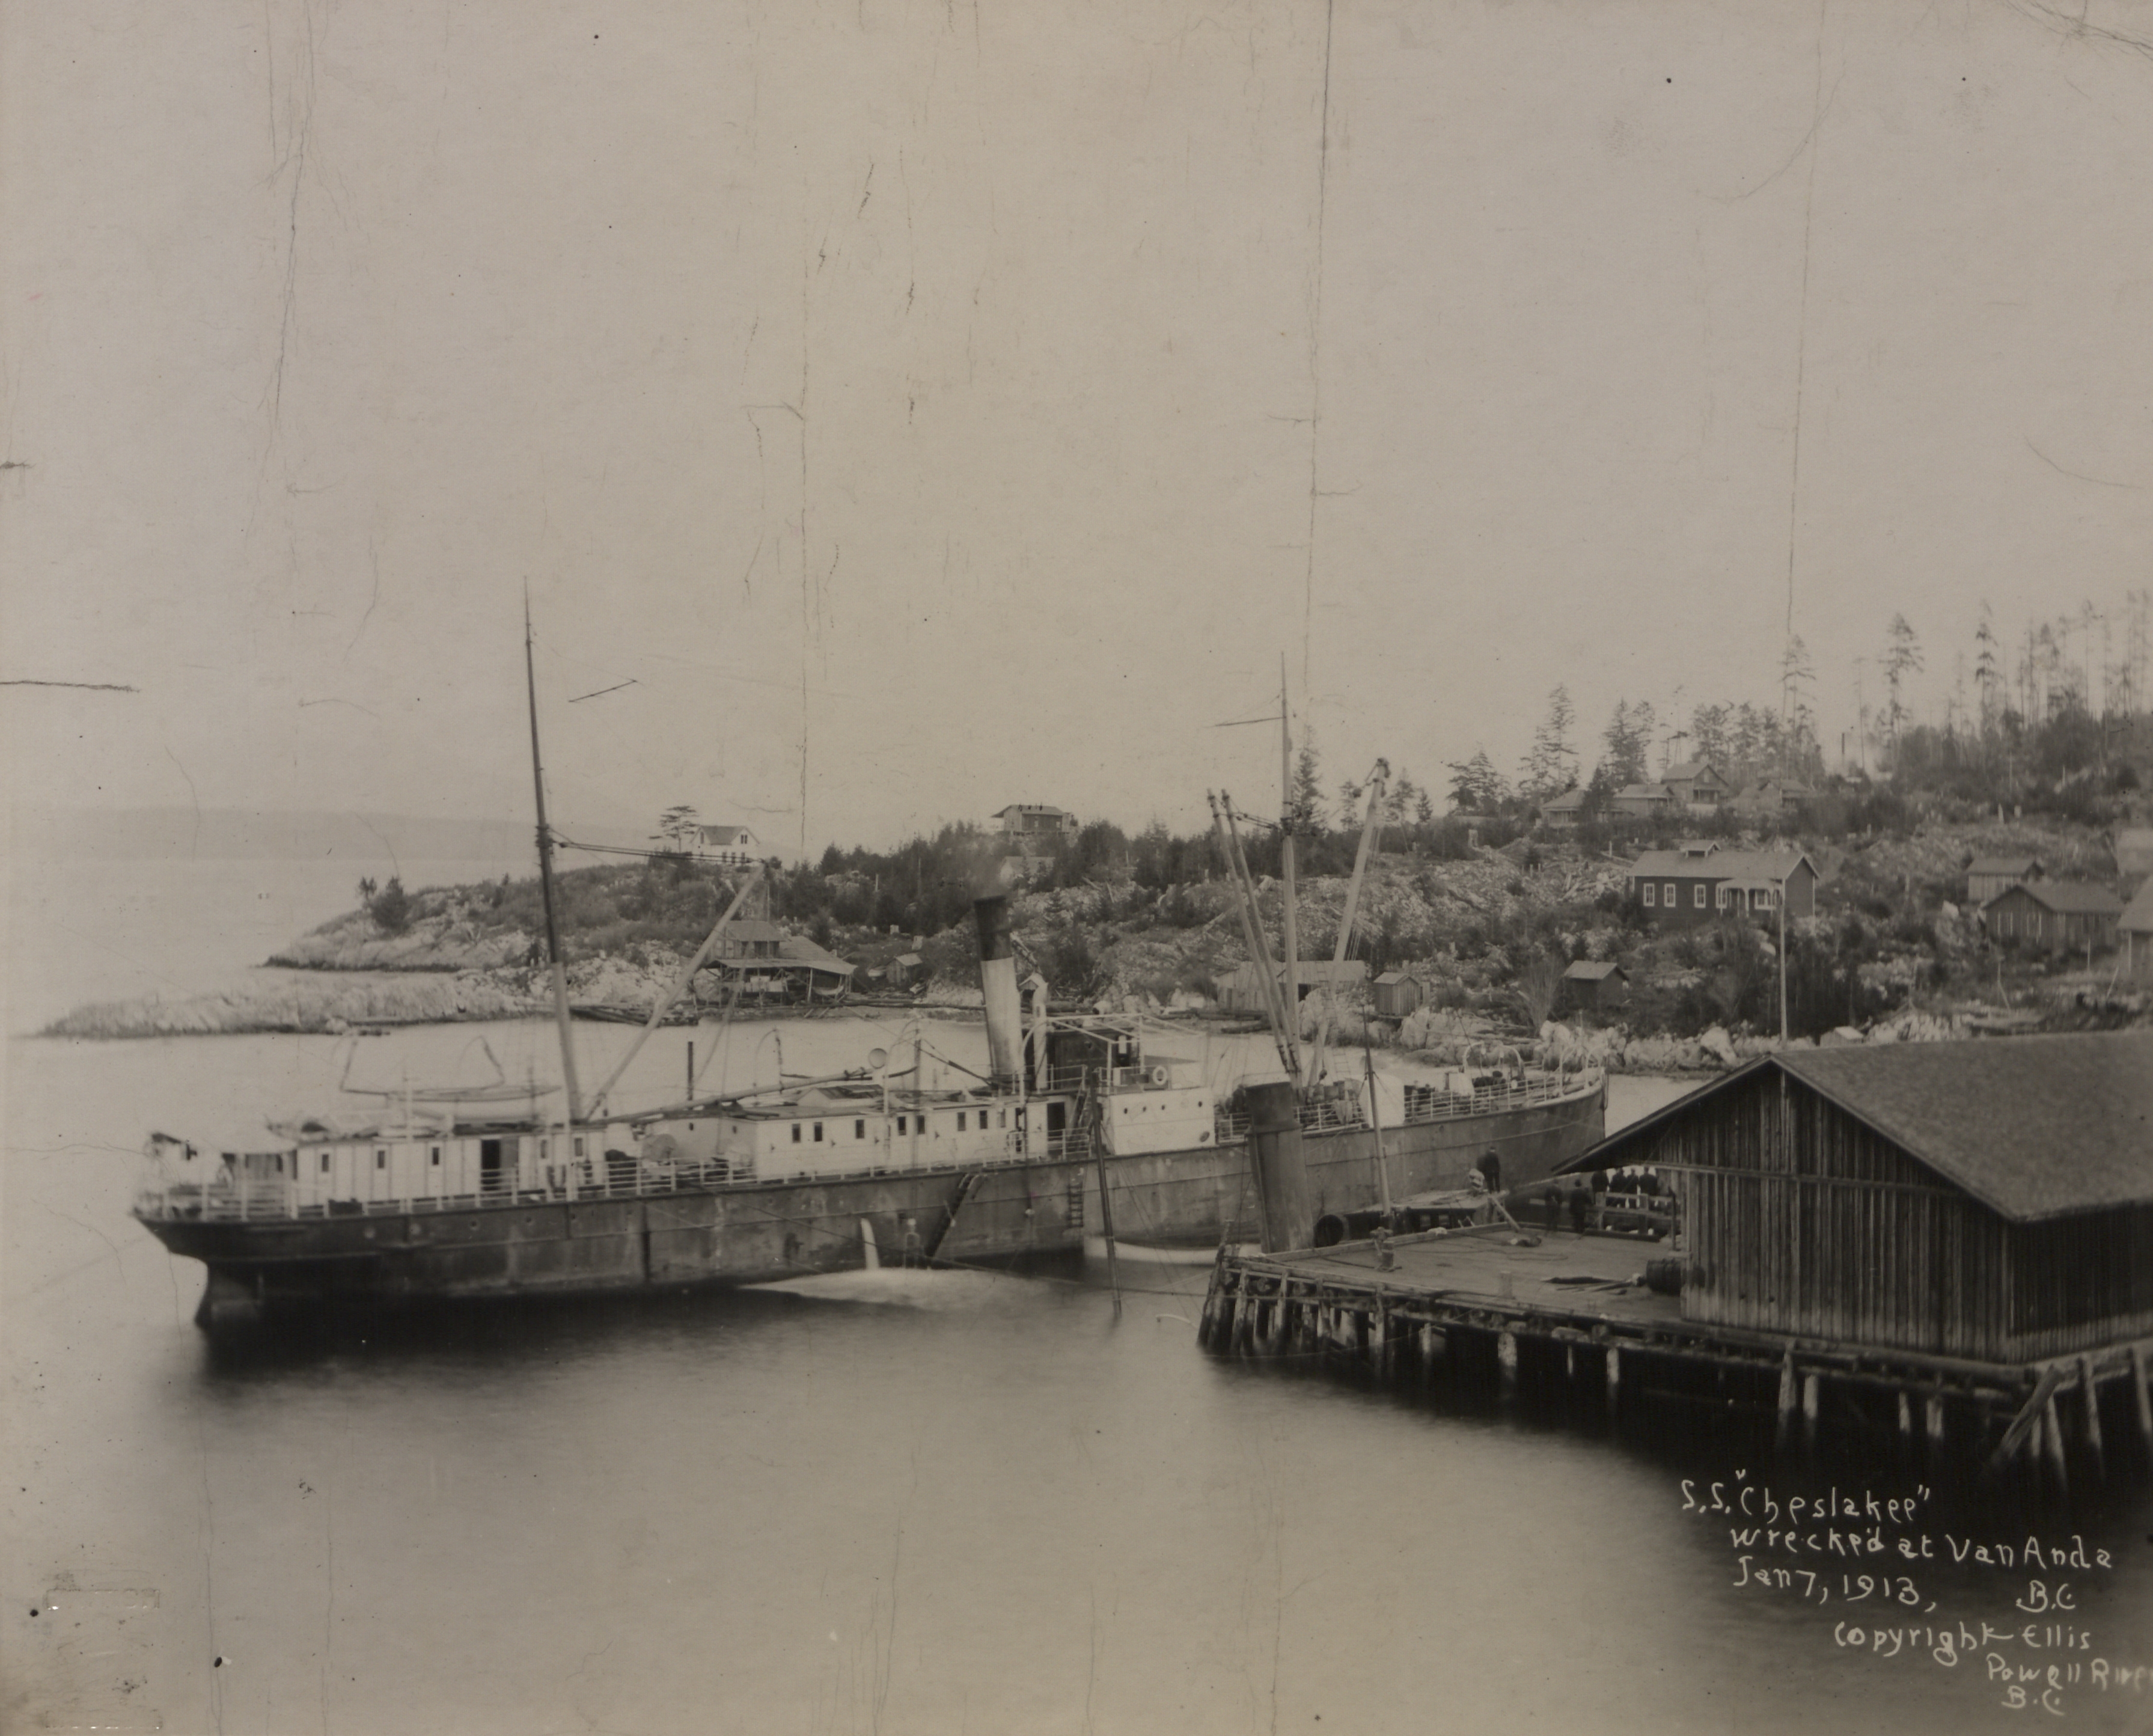 S.S. 'Cheslakee'